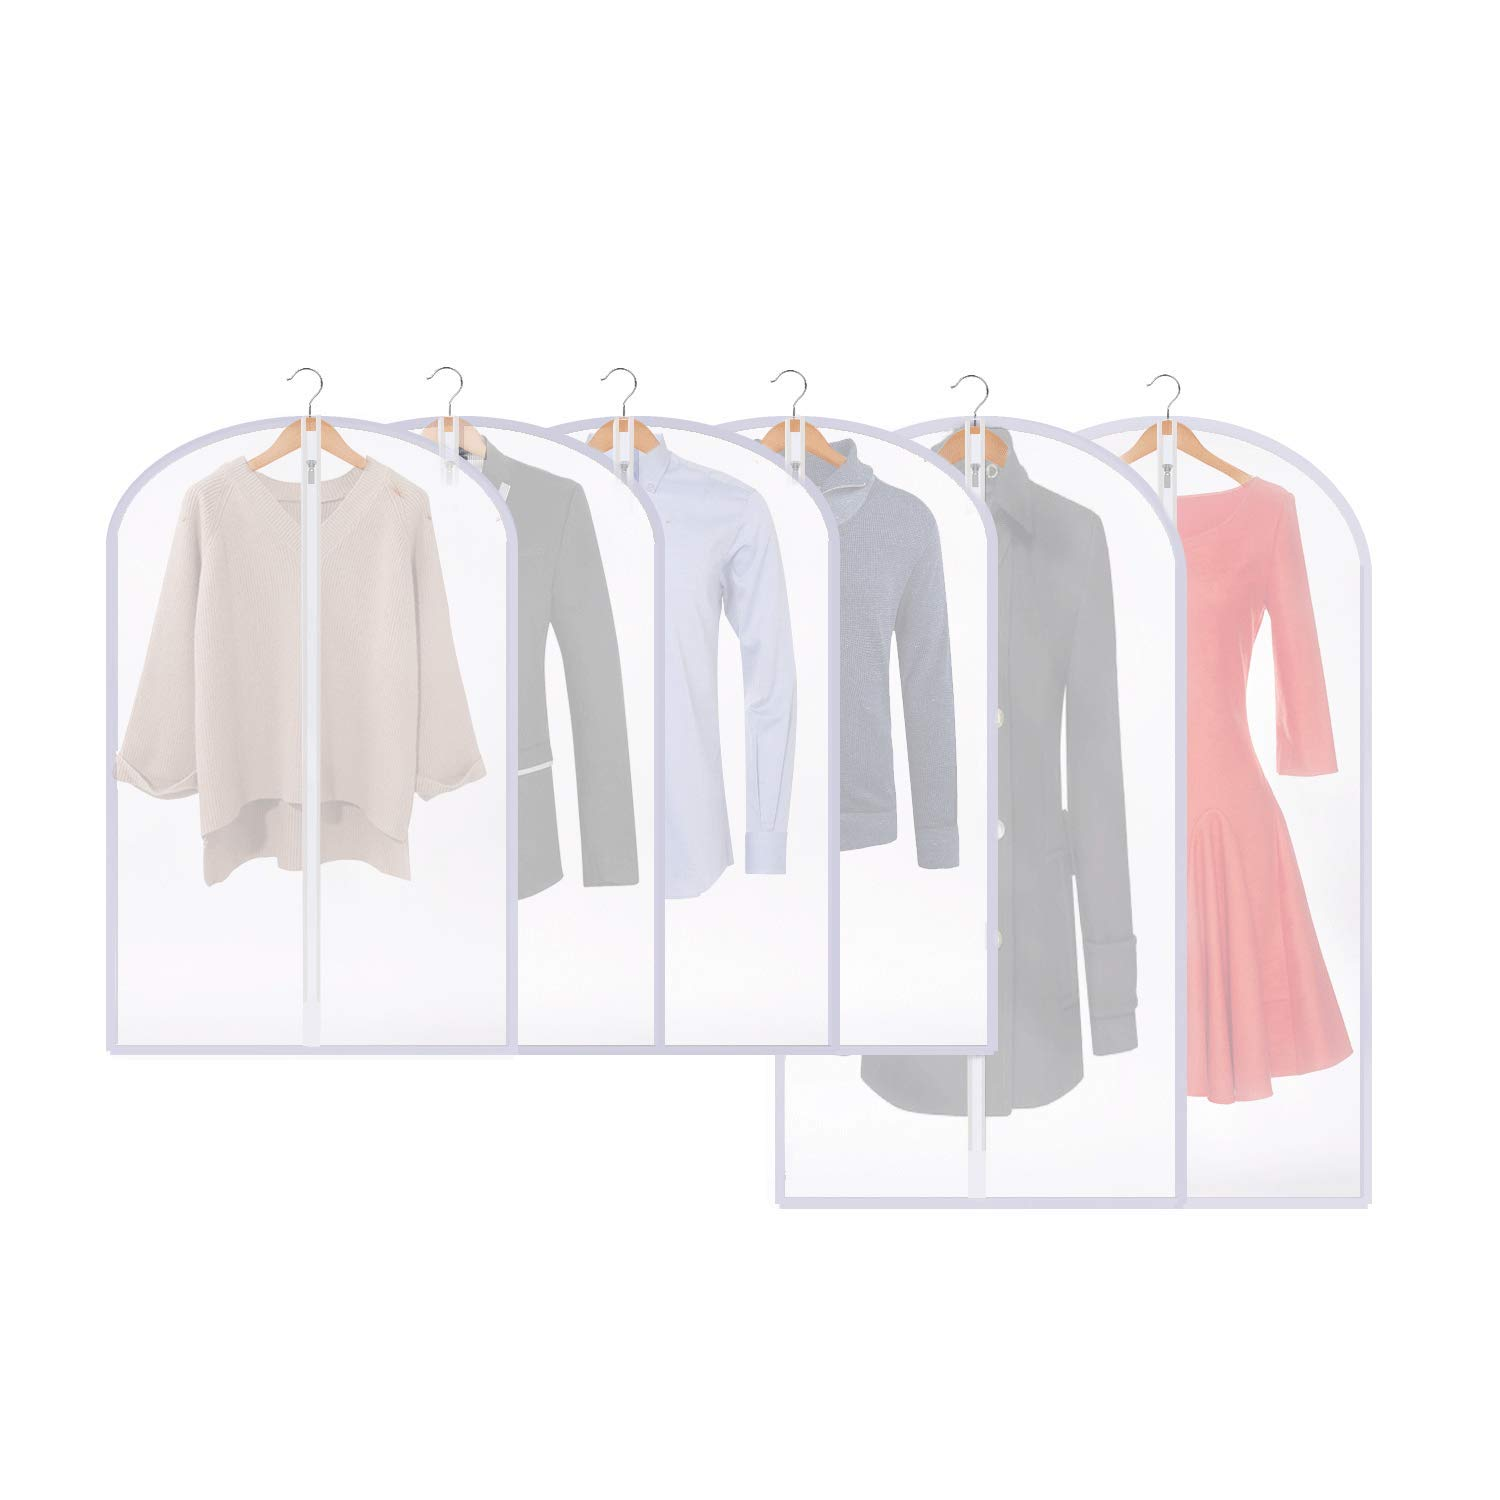 "Thipoten Garment Bags,Set of 6 Moth-Proof Dust Cover for Closet Storage and Travel (Translucent, 24"" x 40""/47"")"